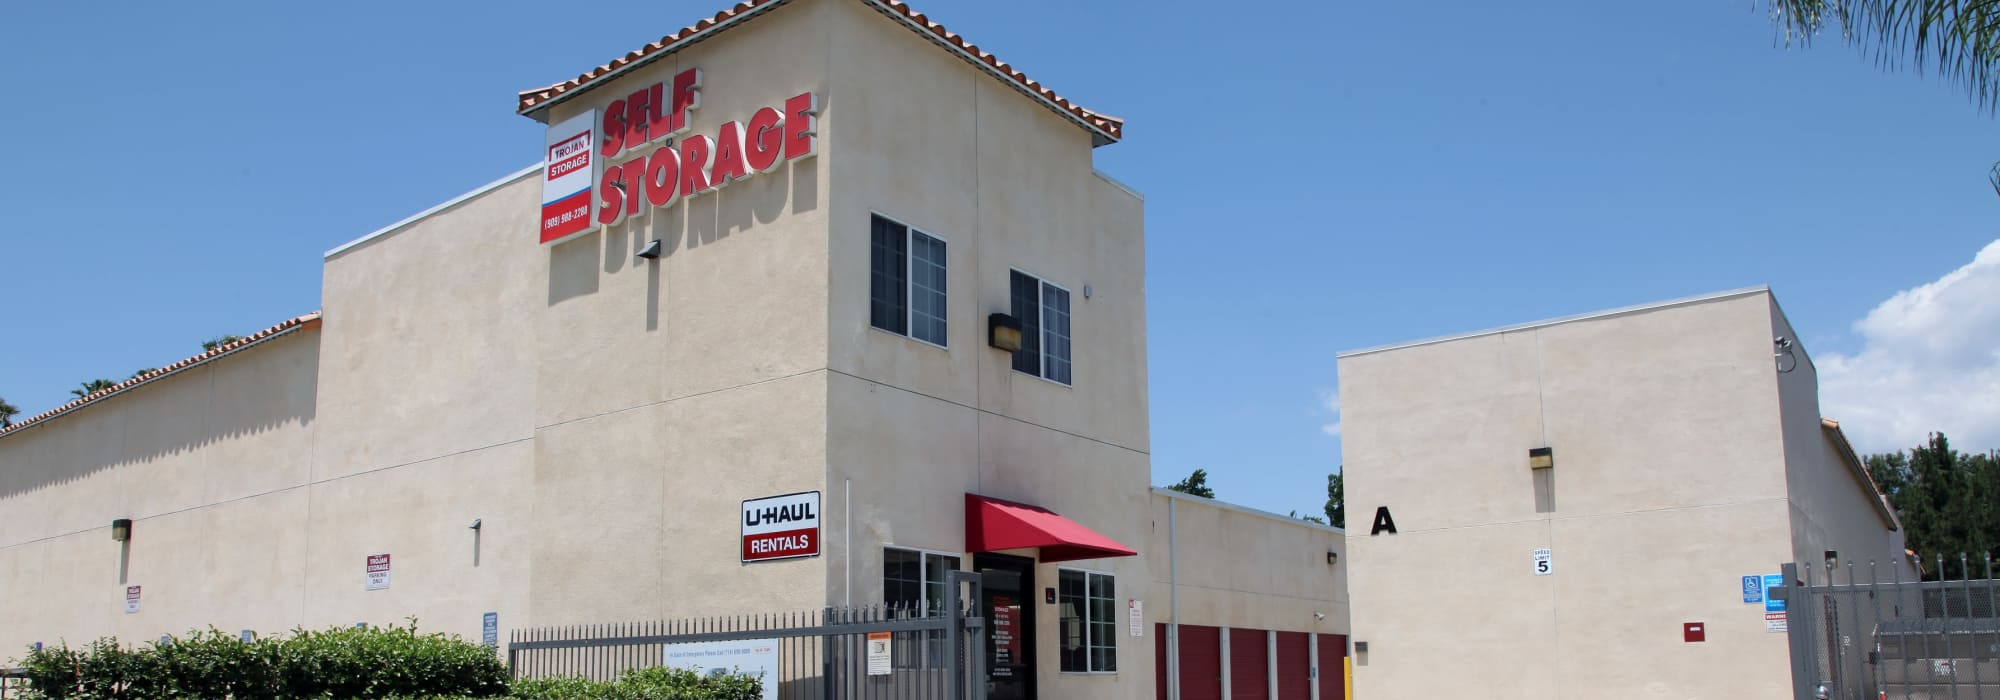 Self Storage Units Ontario Ca Near Upland Trojan Storage